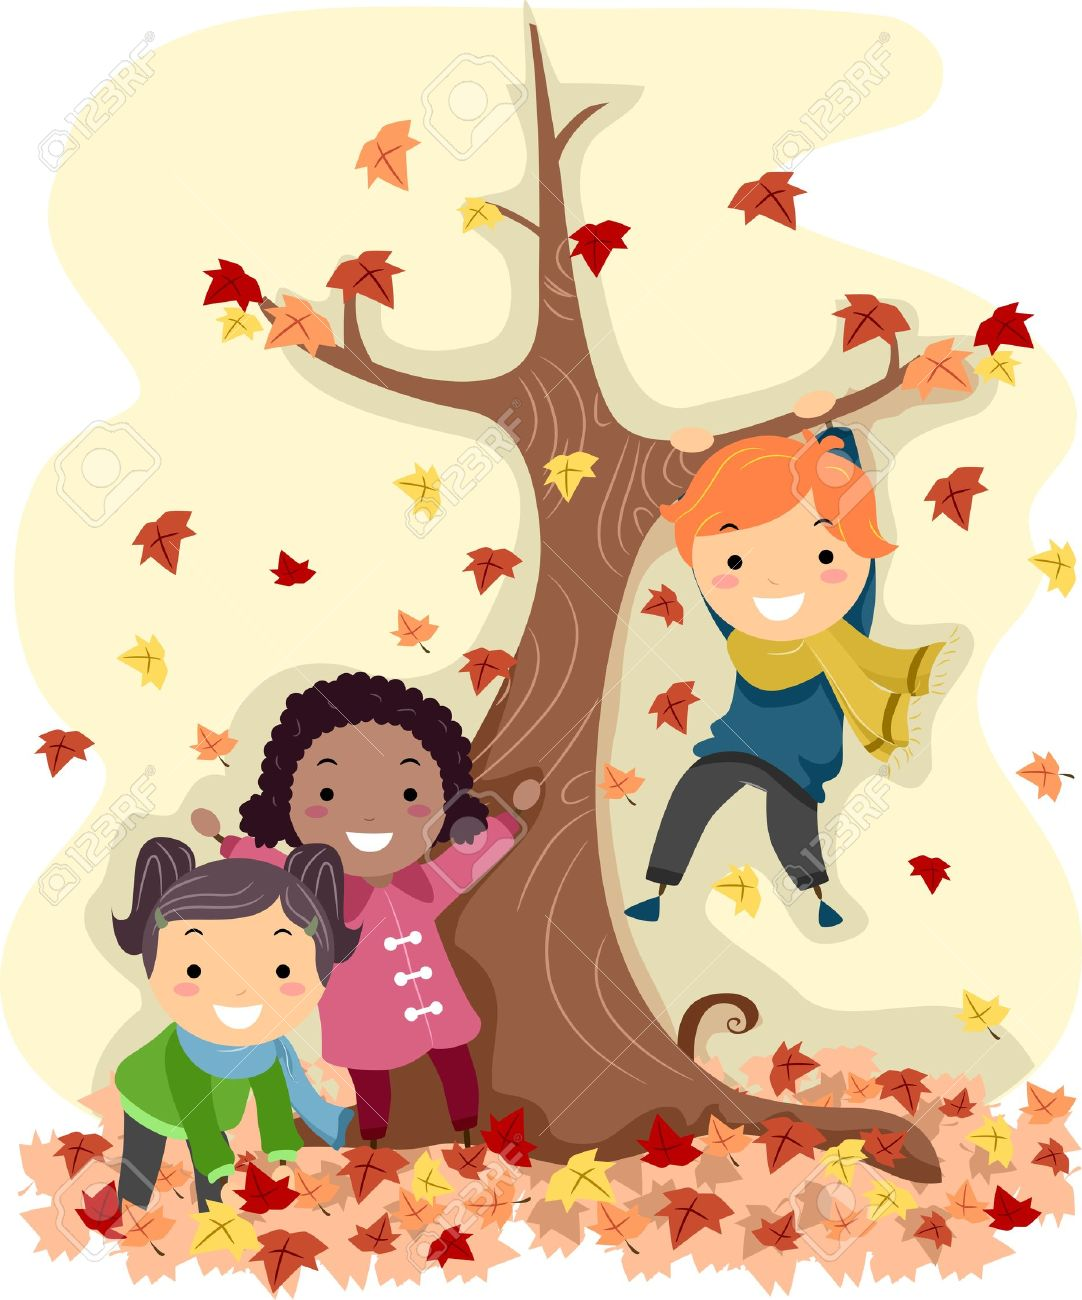 Illustration Of Stick Kids Playing With Autumn Leaves Stock Photo.